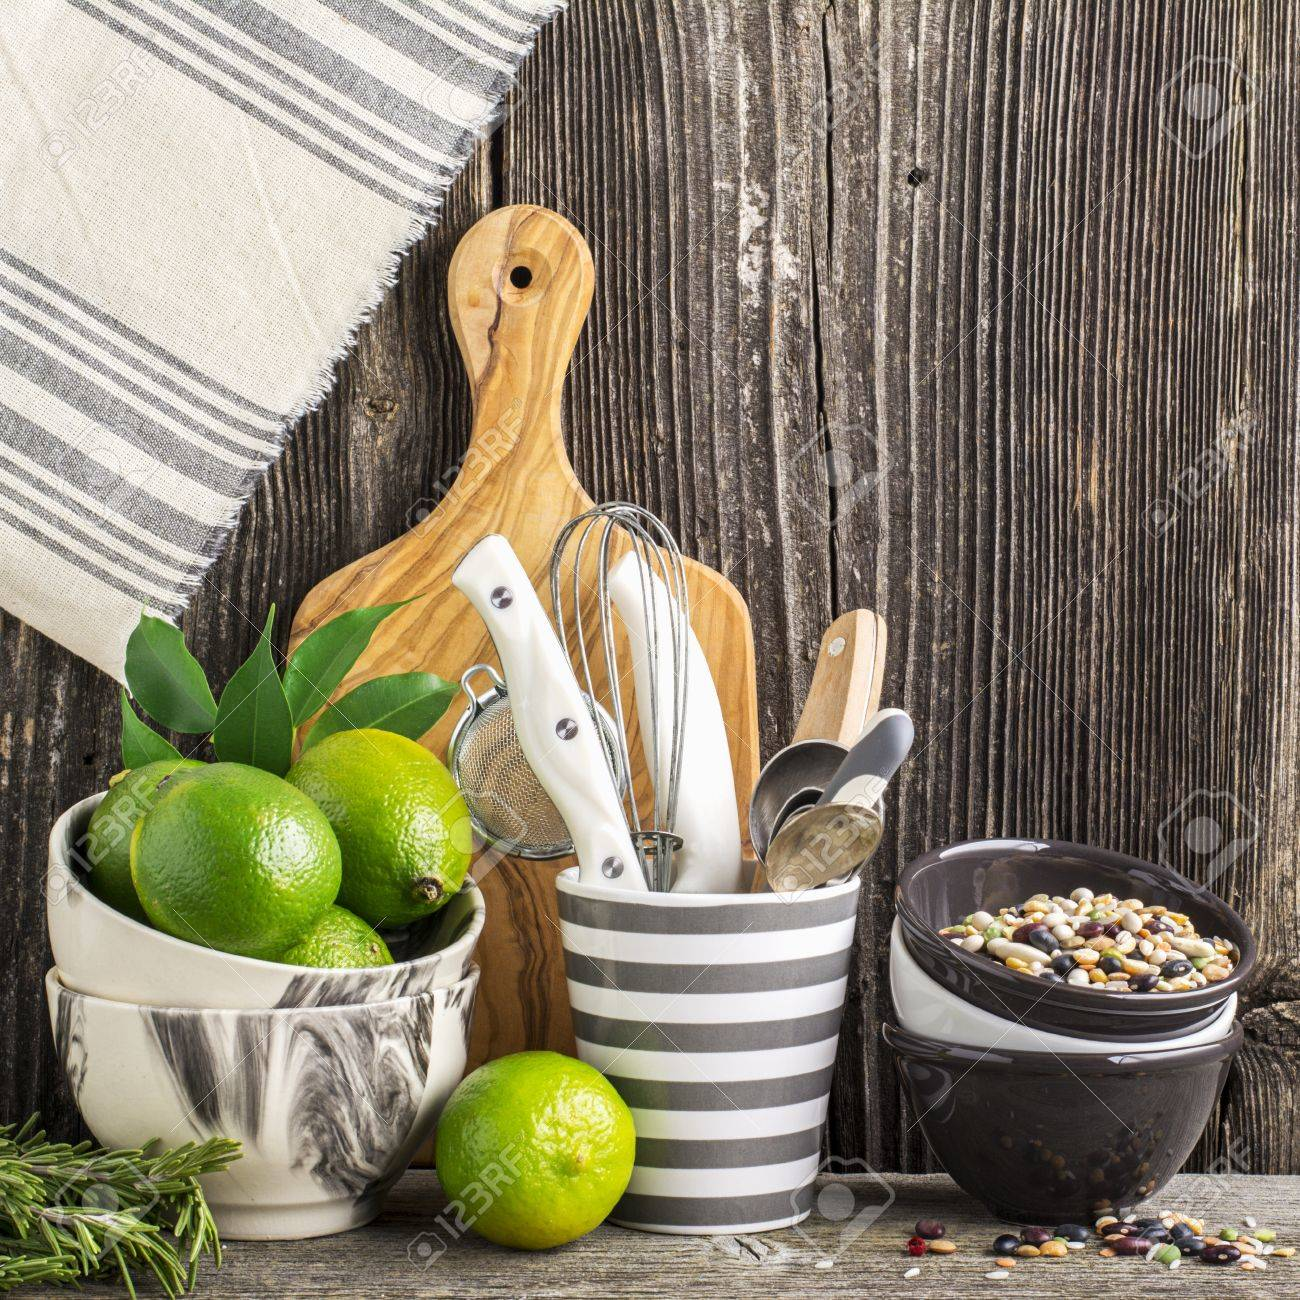 Simple Kitchen Still Life On A Background Of Wooden Wall Shelf Stock Photo Picture And Royalty Free Image Image 70344550